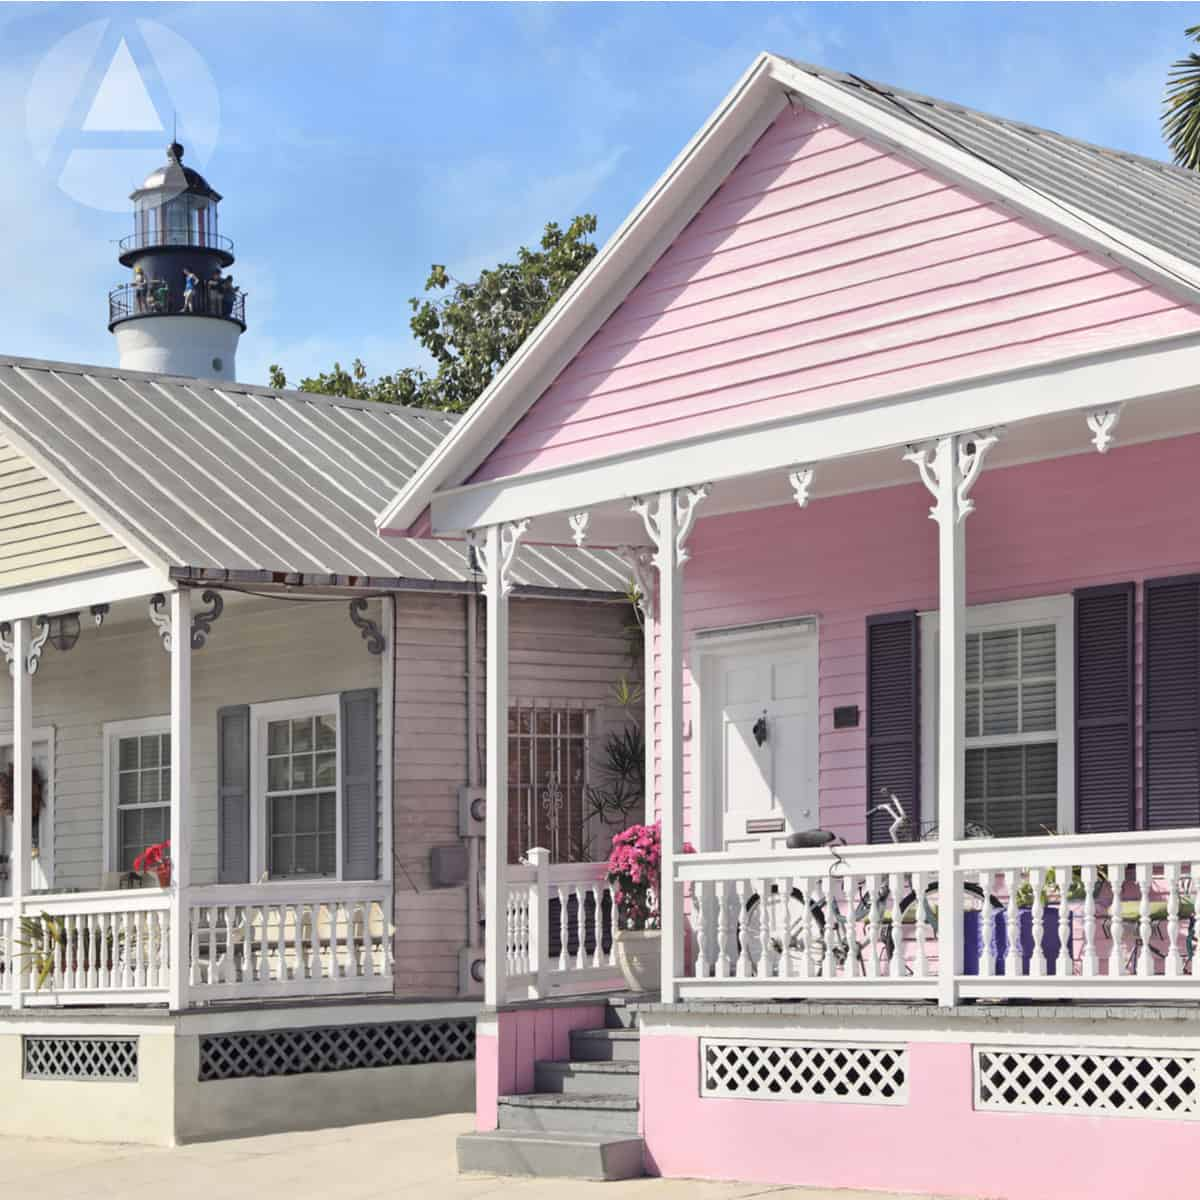 Colorful pink and grey cottages with white Key West-style trim and tin roofs, perfect rental property investments.